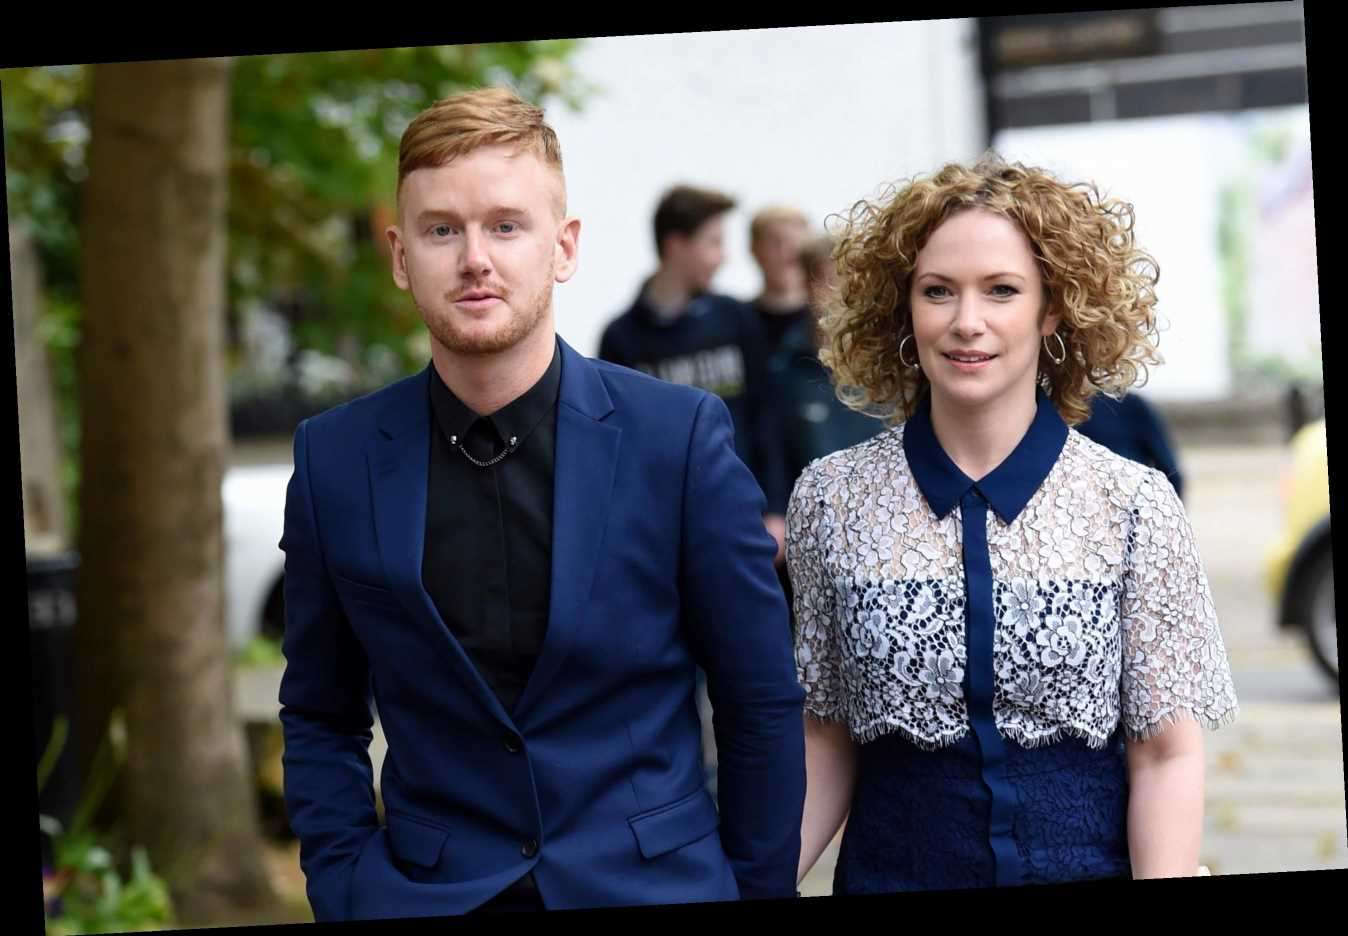 Coronation Street star Mikey North's wife Rachael gives birth to their second child – The Sun